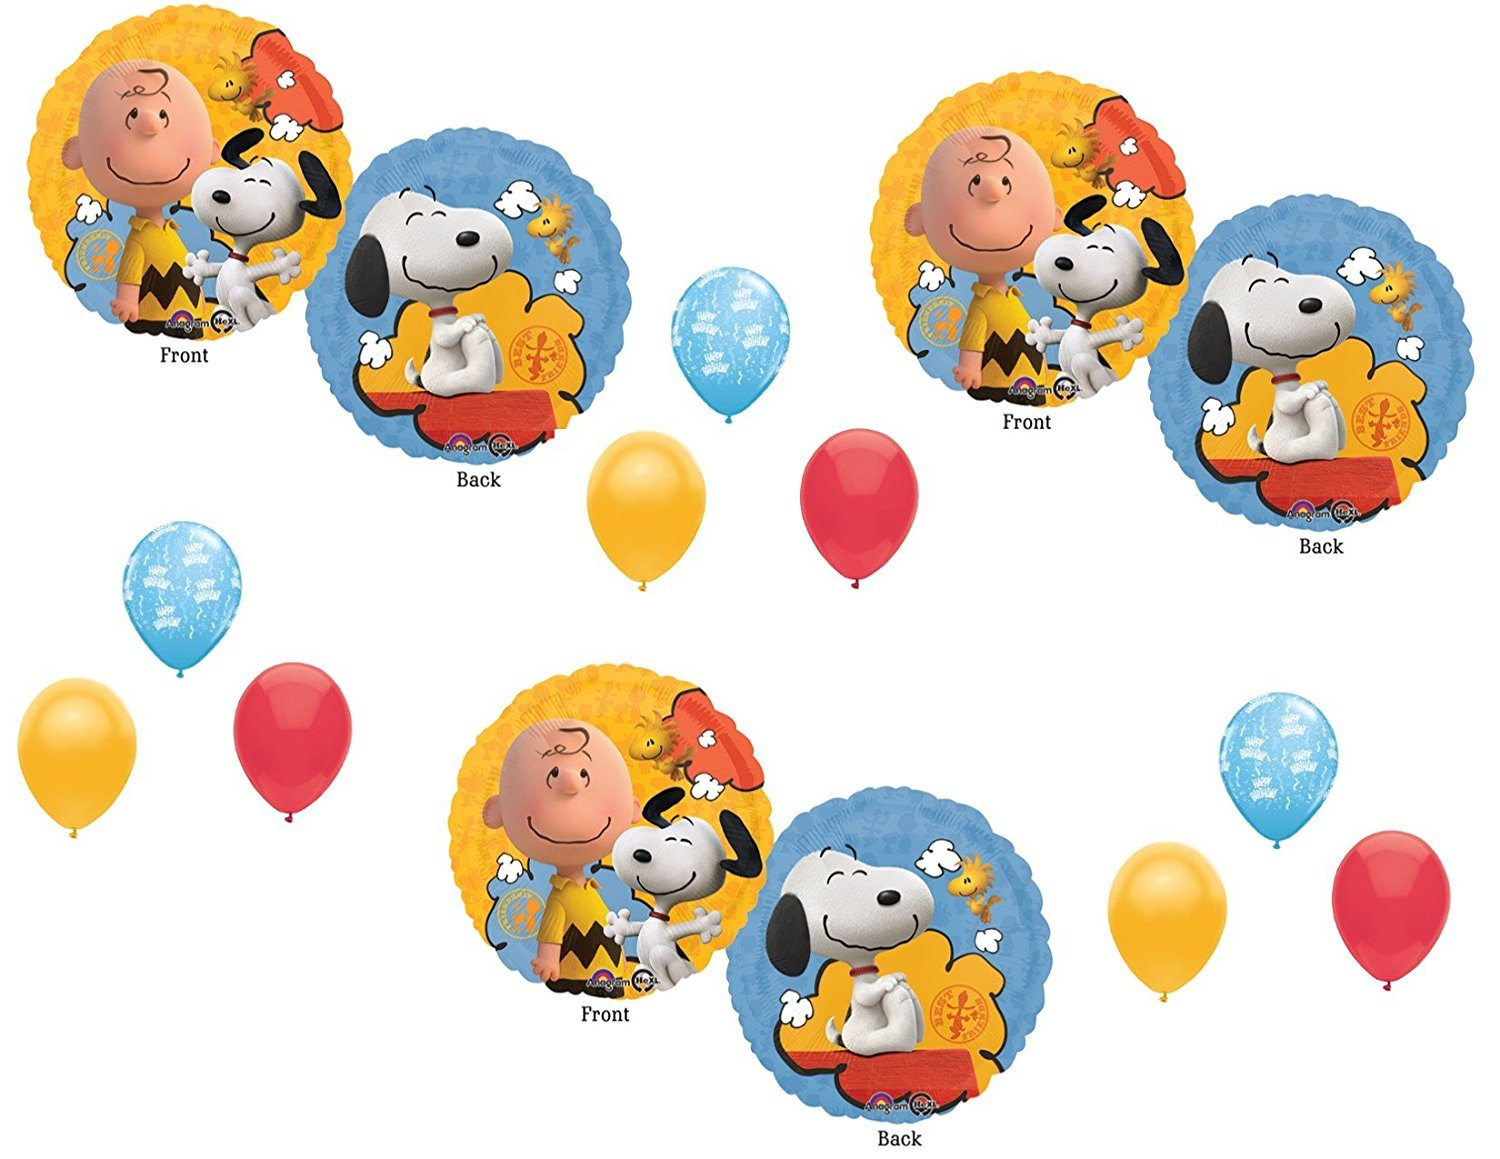 Amazon.com: Peanuts Charlie Brown Balloons Decoration Supplies Party ...